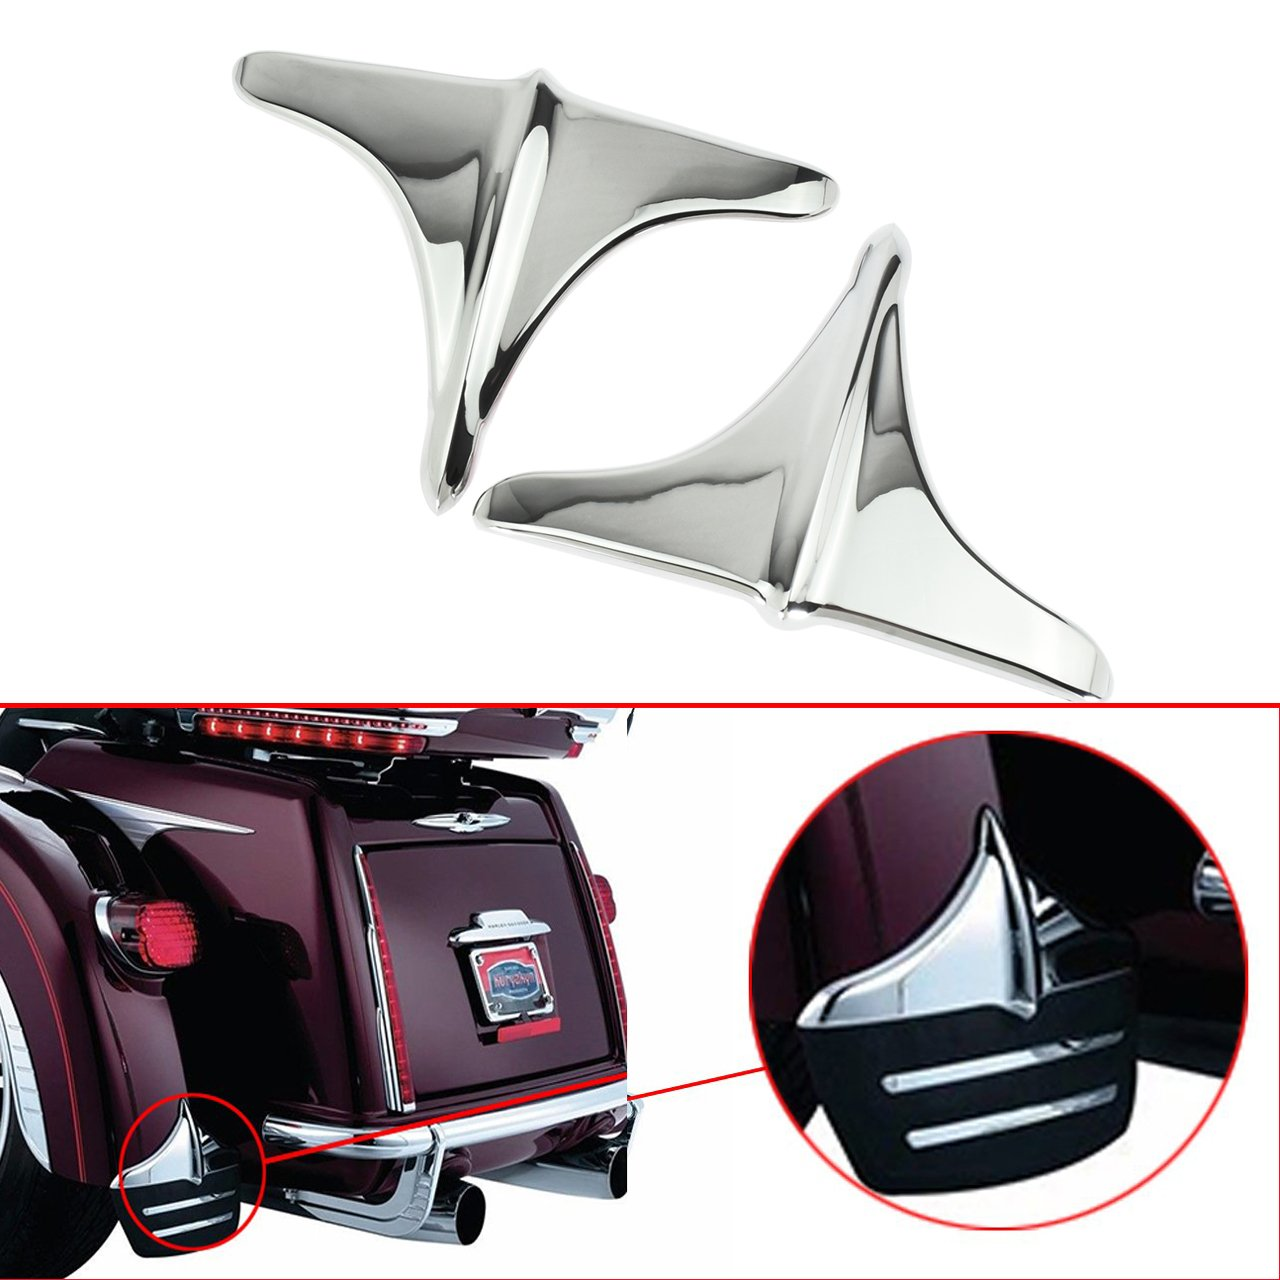 Motorcycle Rear Fender Accents Leading Front Edge Trim for Harley Touring Trikes FLHX FLHT 2009-2016 2017,Black